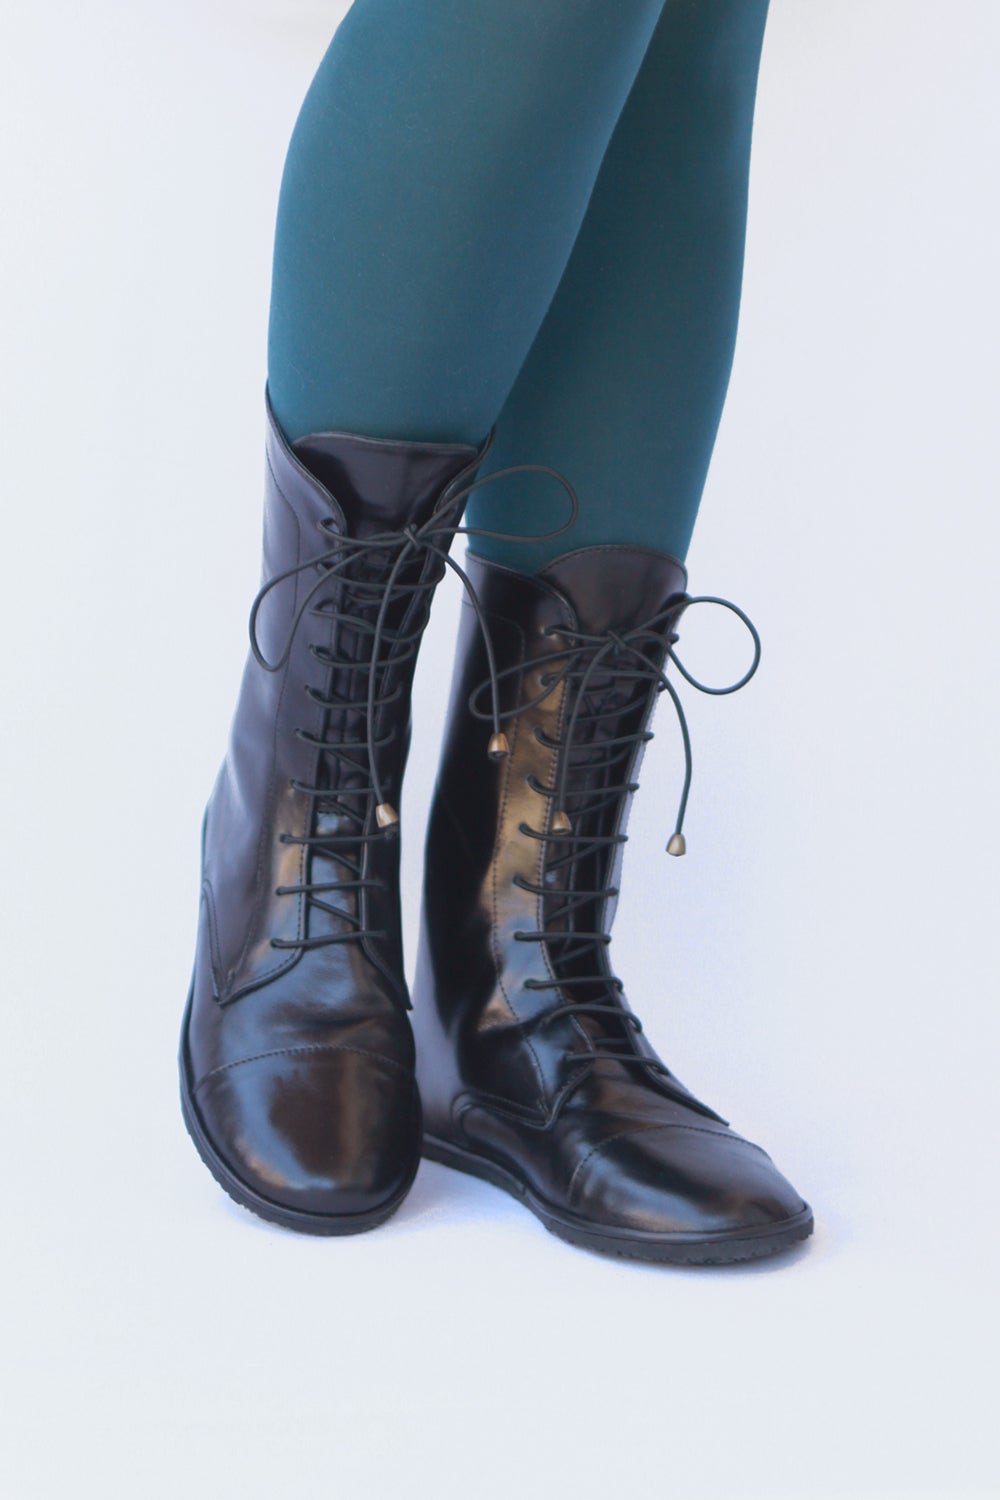 Image of Lace up boots - Impulse in Lustrous Black